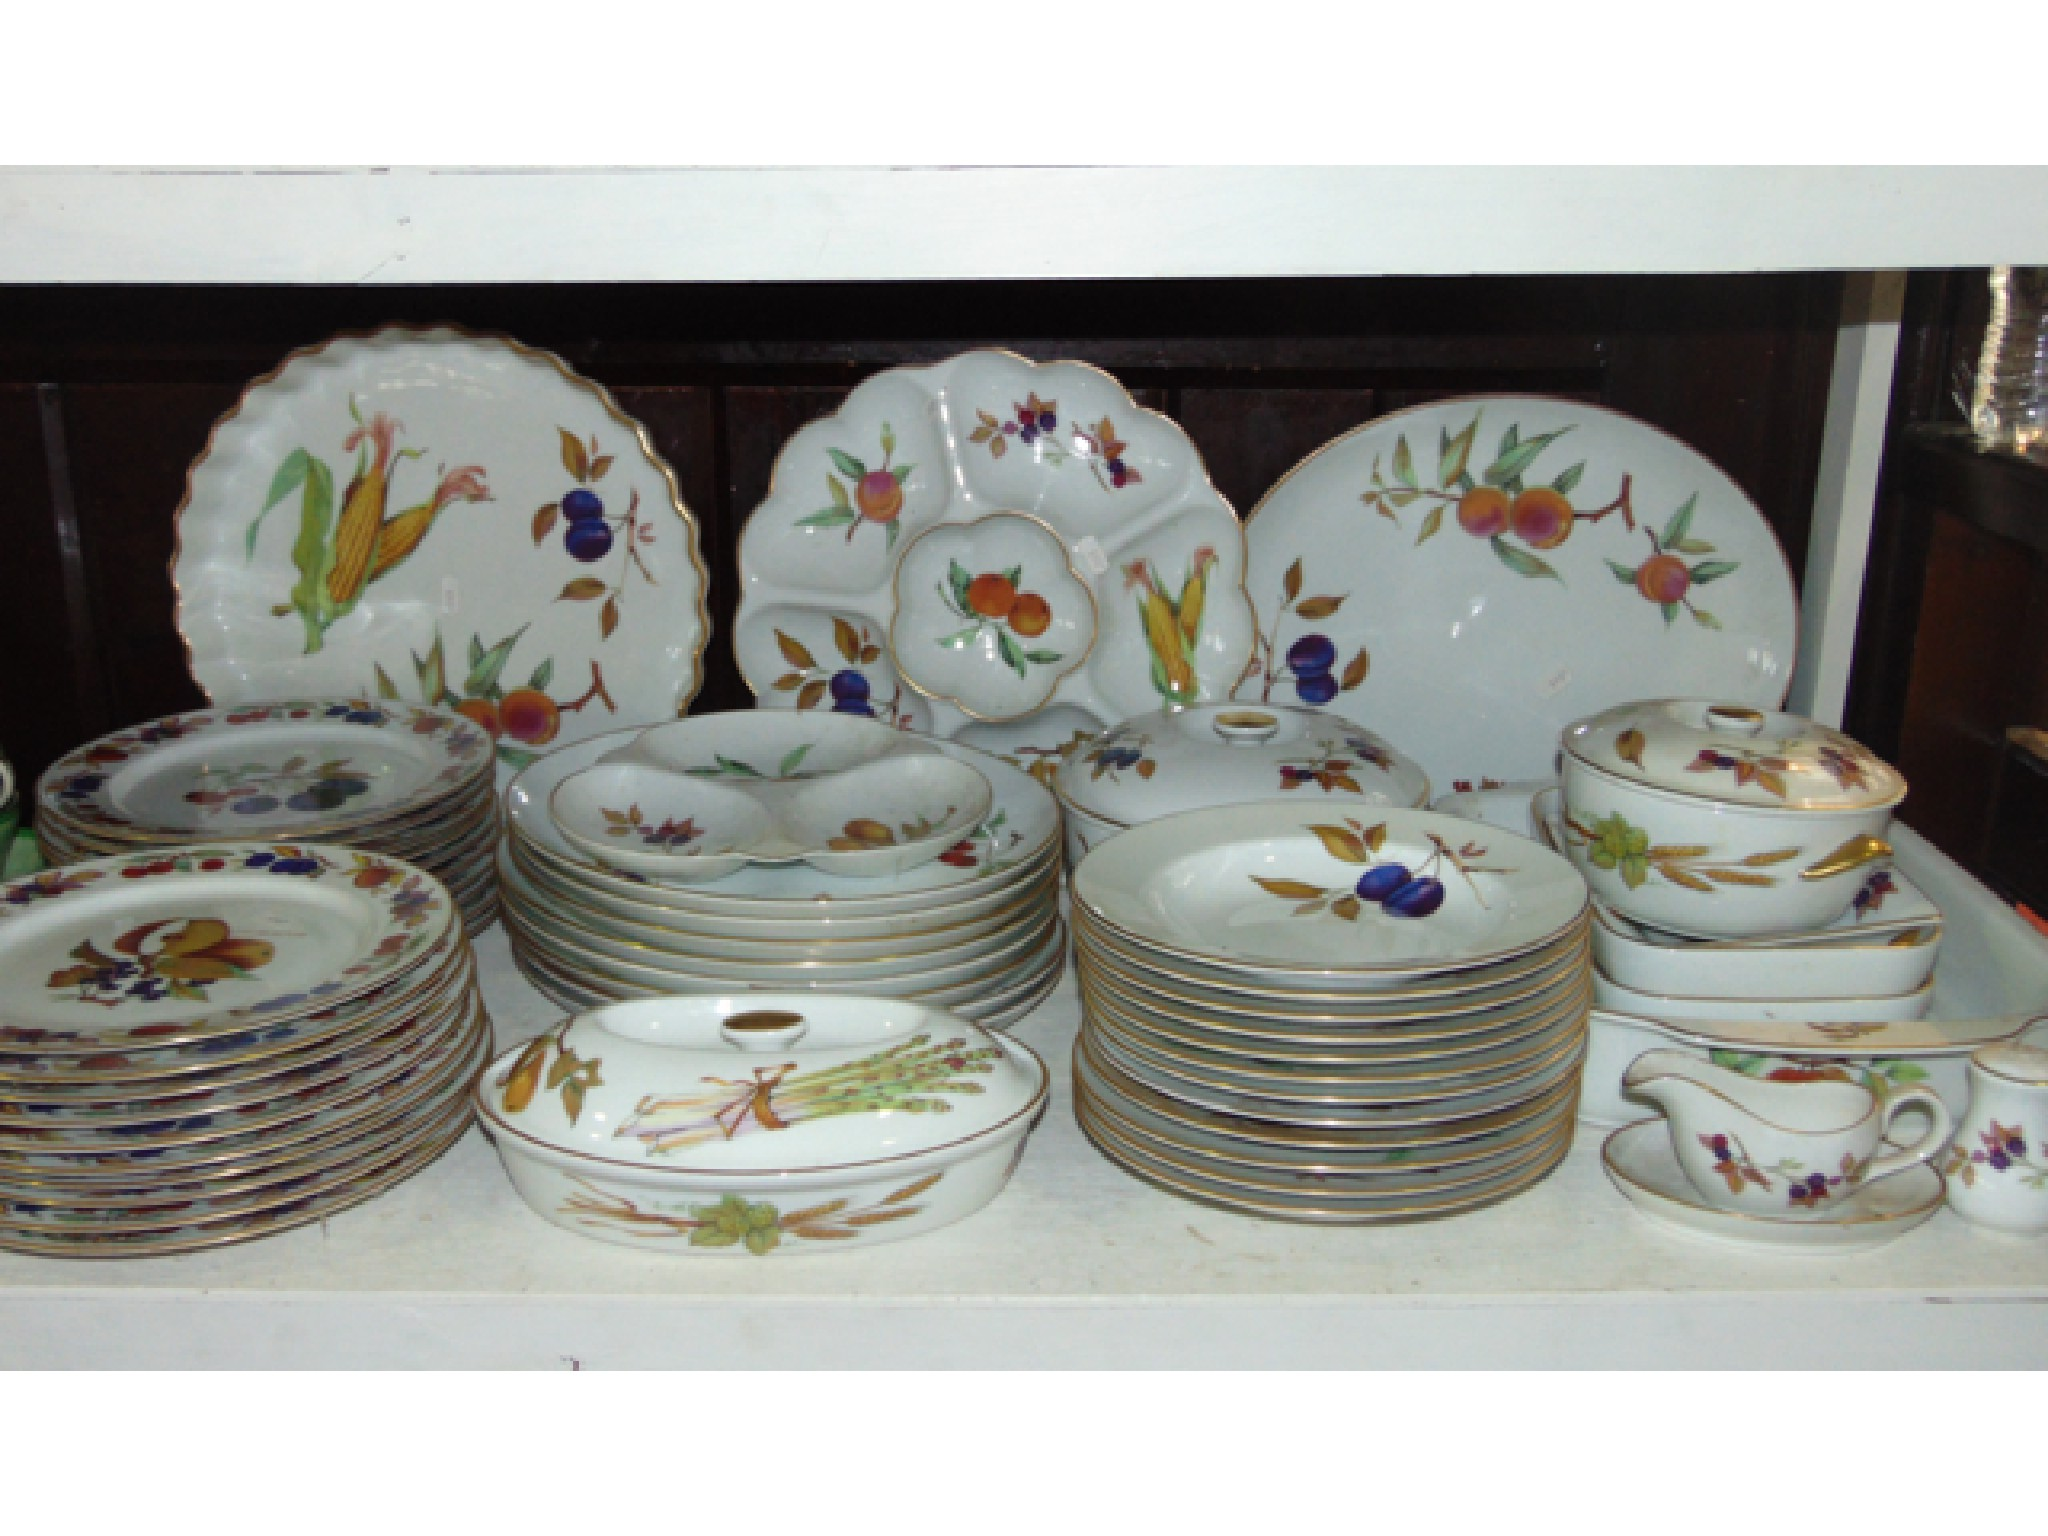 A extensive quantity of Royal Worcester oven